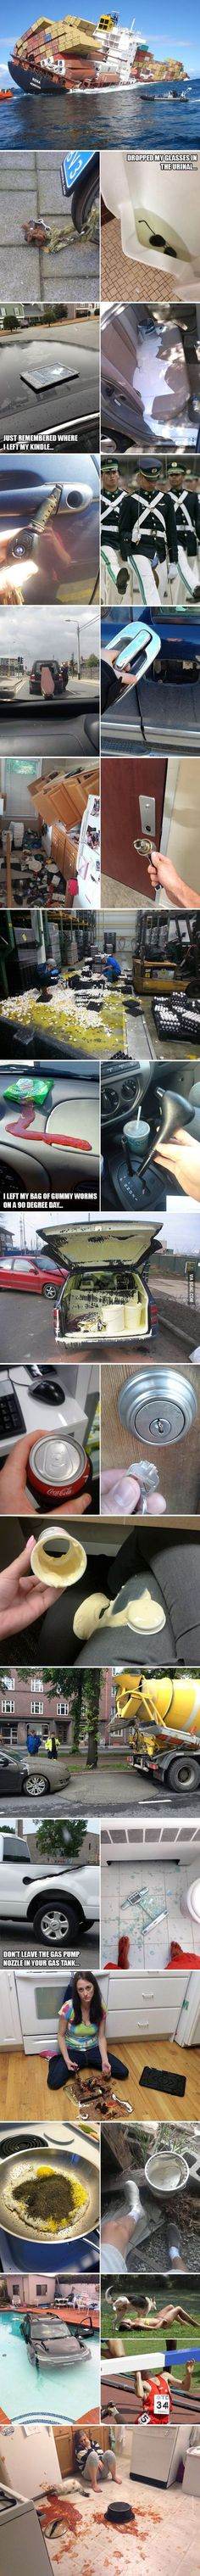 If you think you're having a bad day, just look at these pictures... - 9GAG